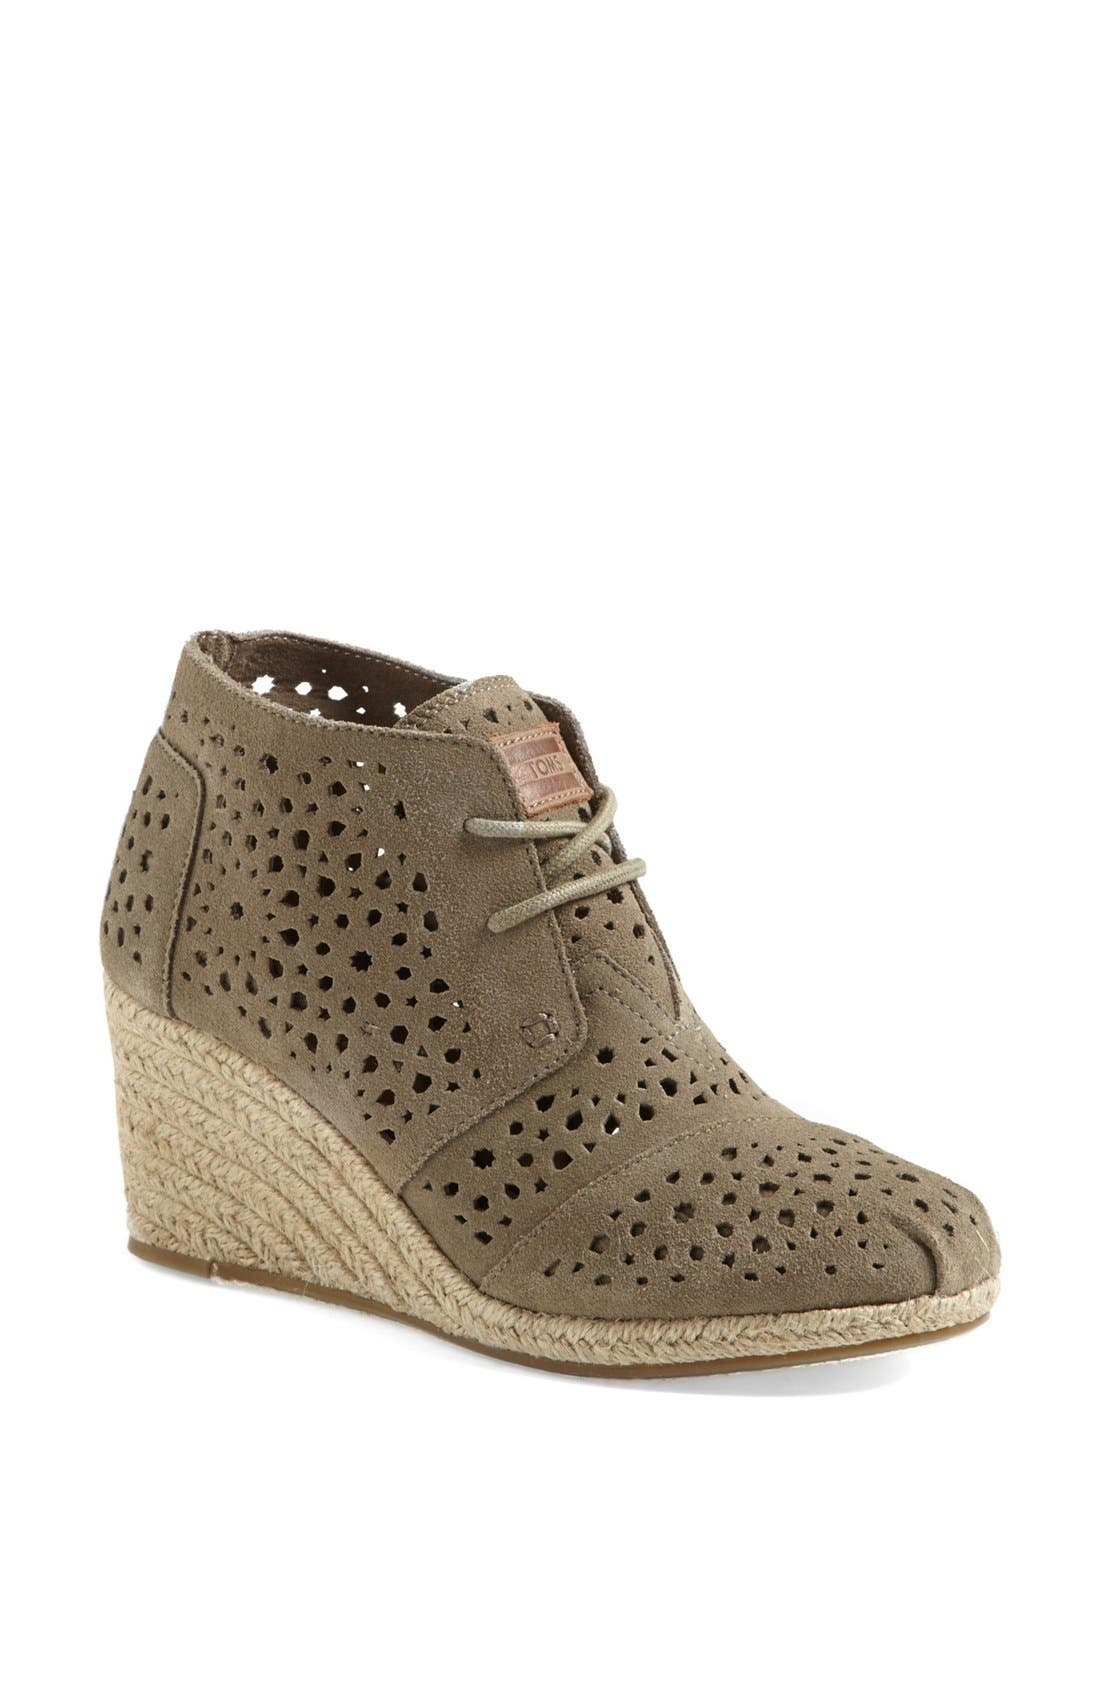 Alternate Image 1 Selected - TOMS 'Moroccan Cutout' Desert Bootie (Women)